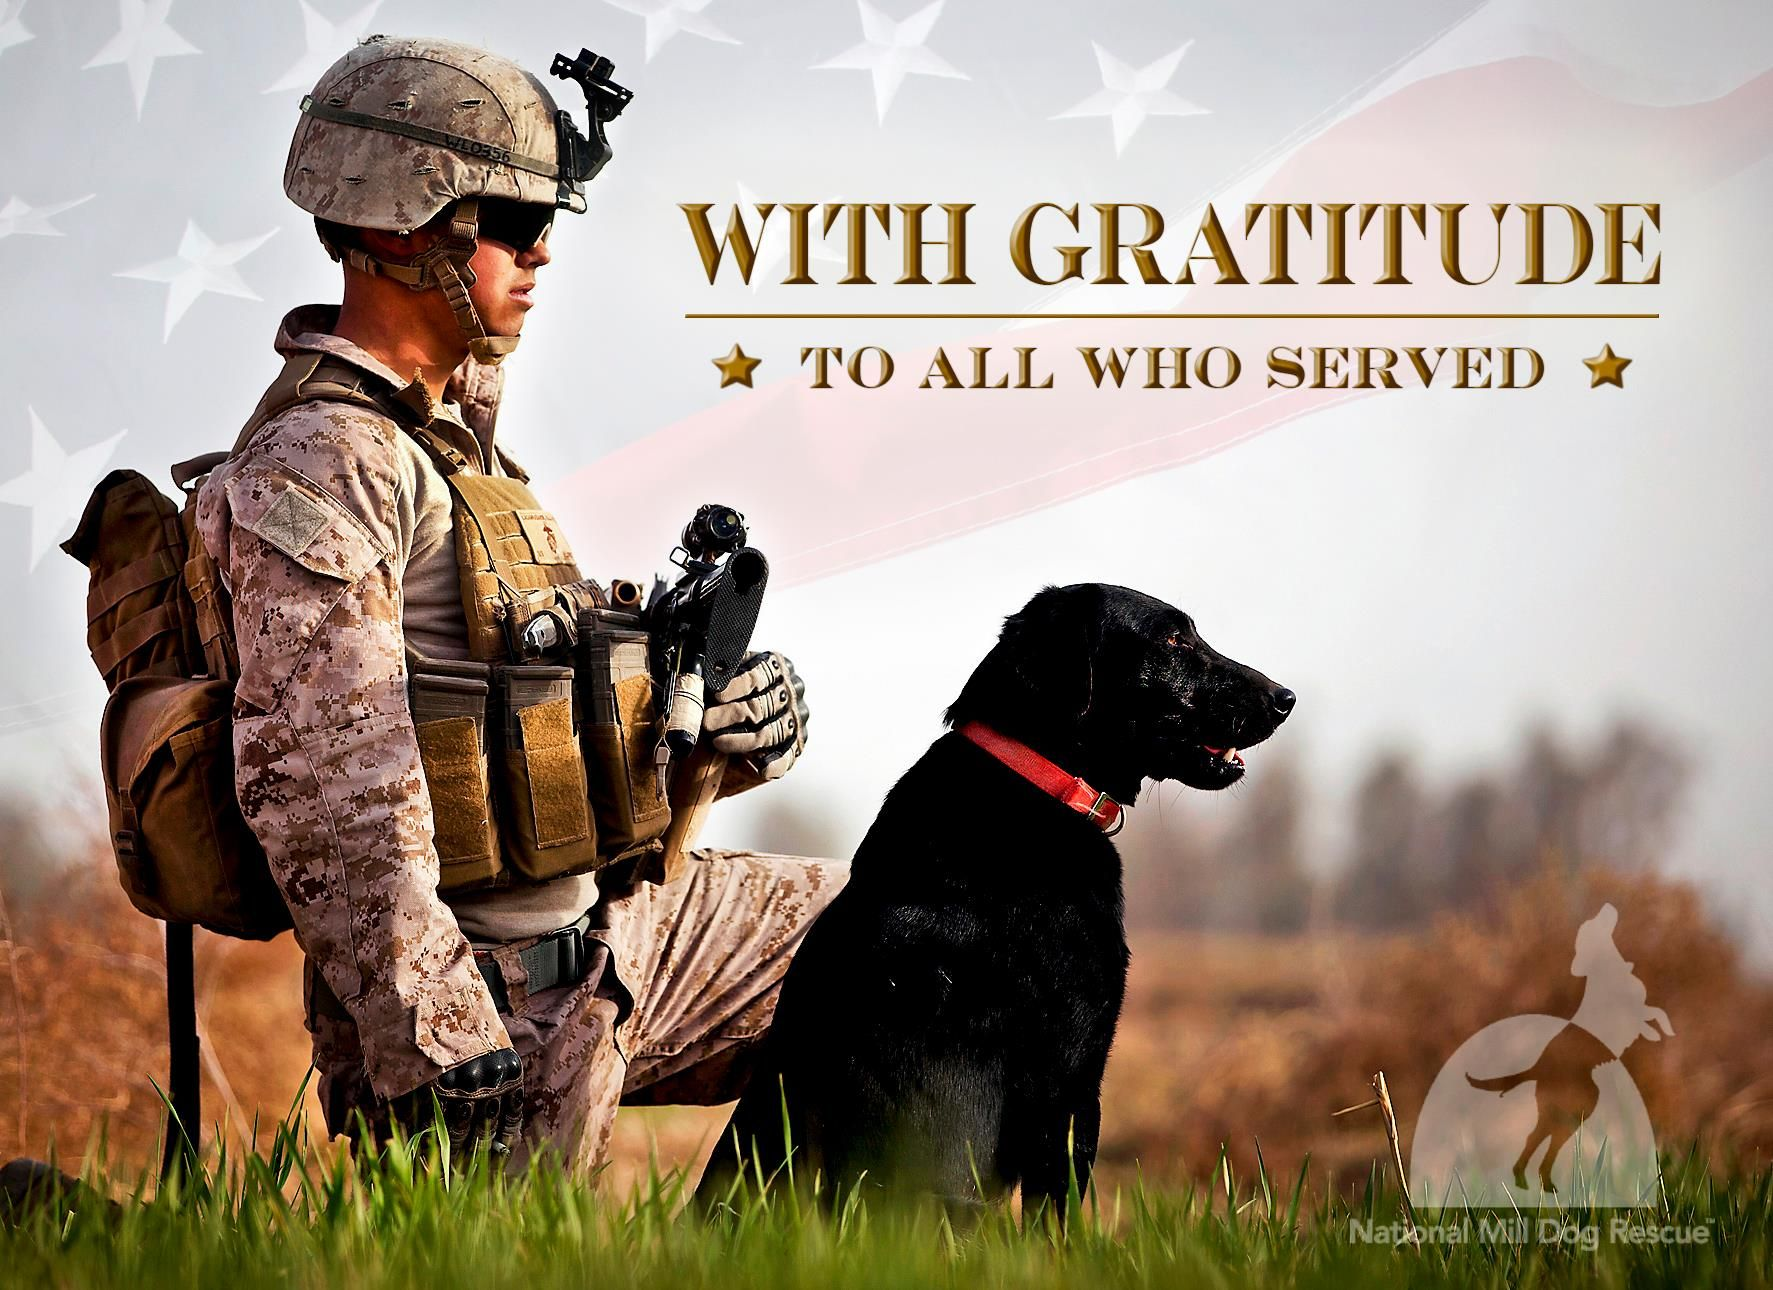 Happy Veteran's Day to all our 2 legged and 4 legged